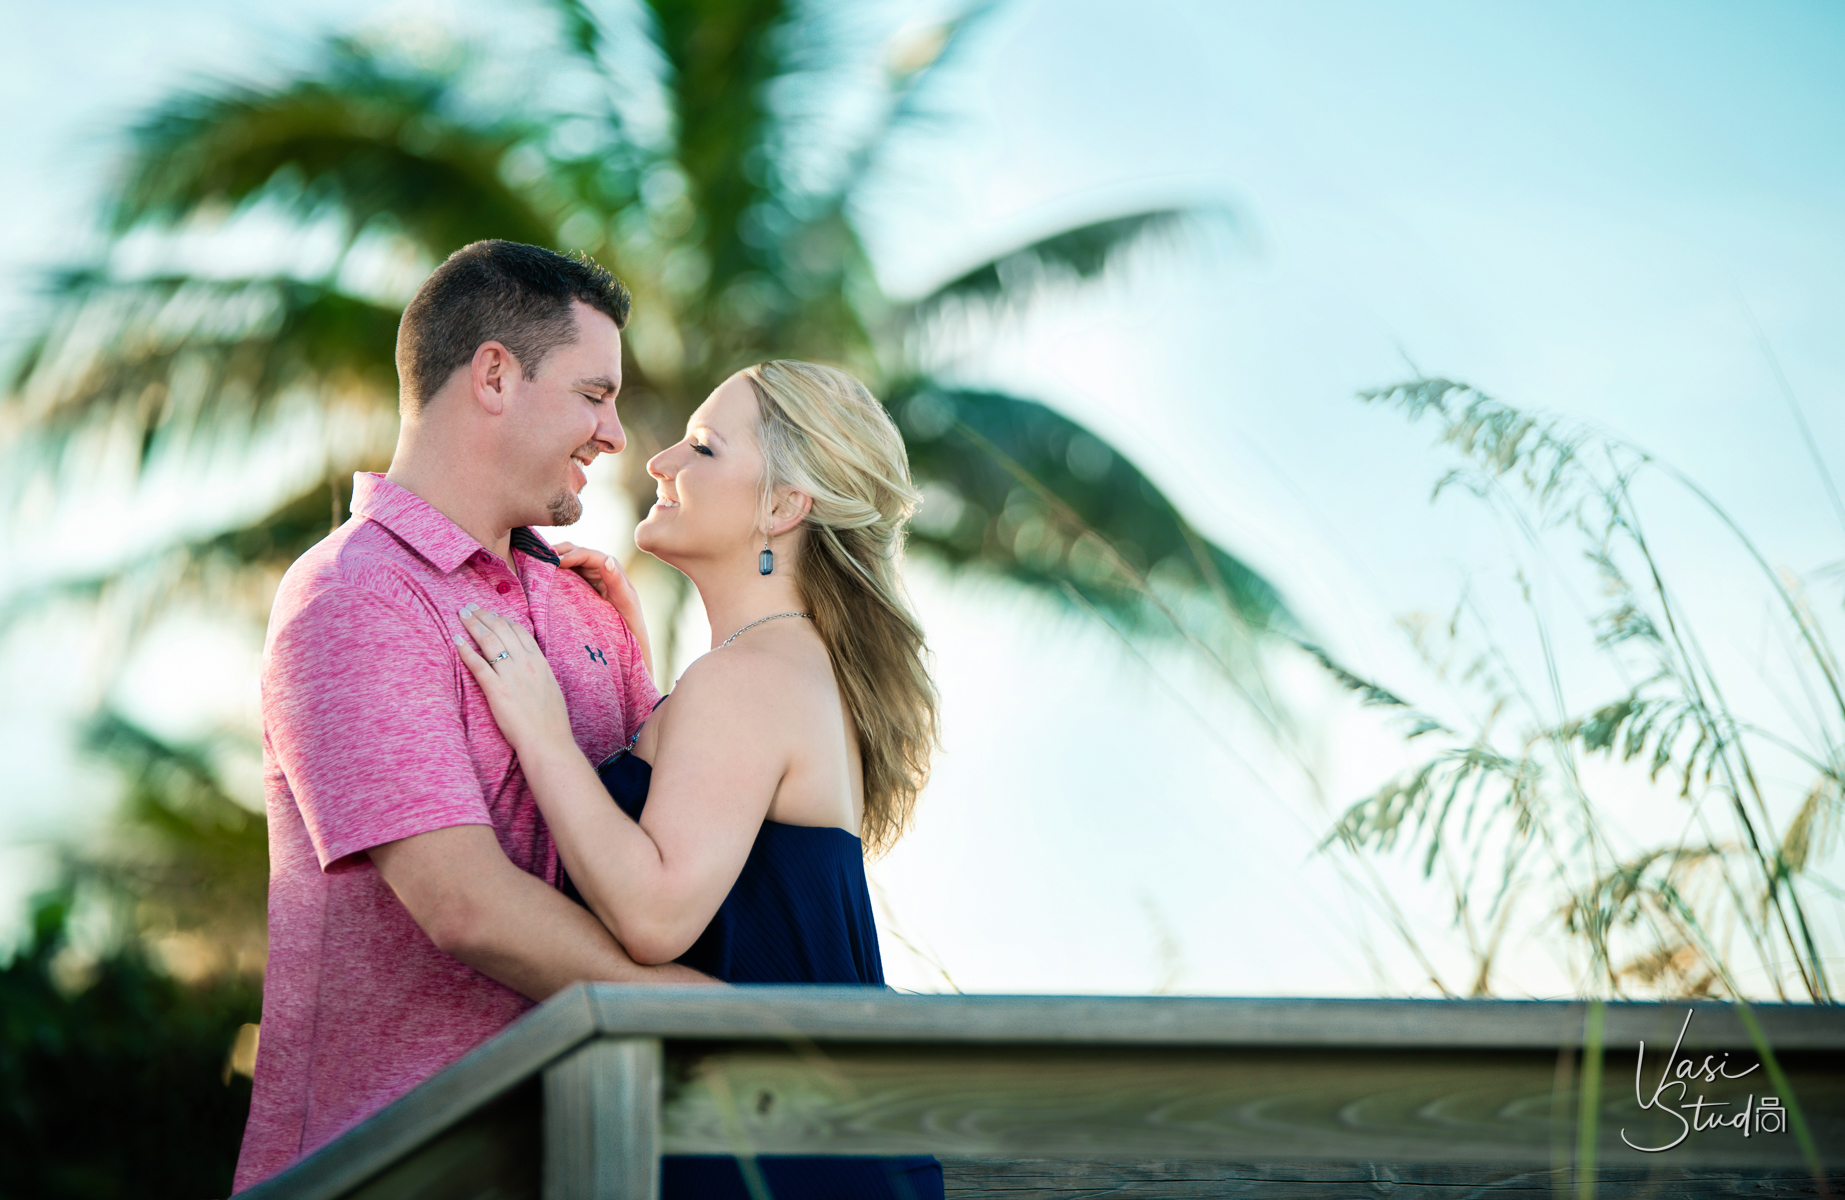 Contact us at 561-307-9875 to schedule your engagement photos.